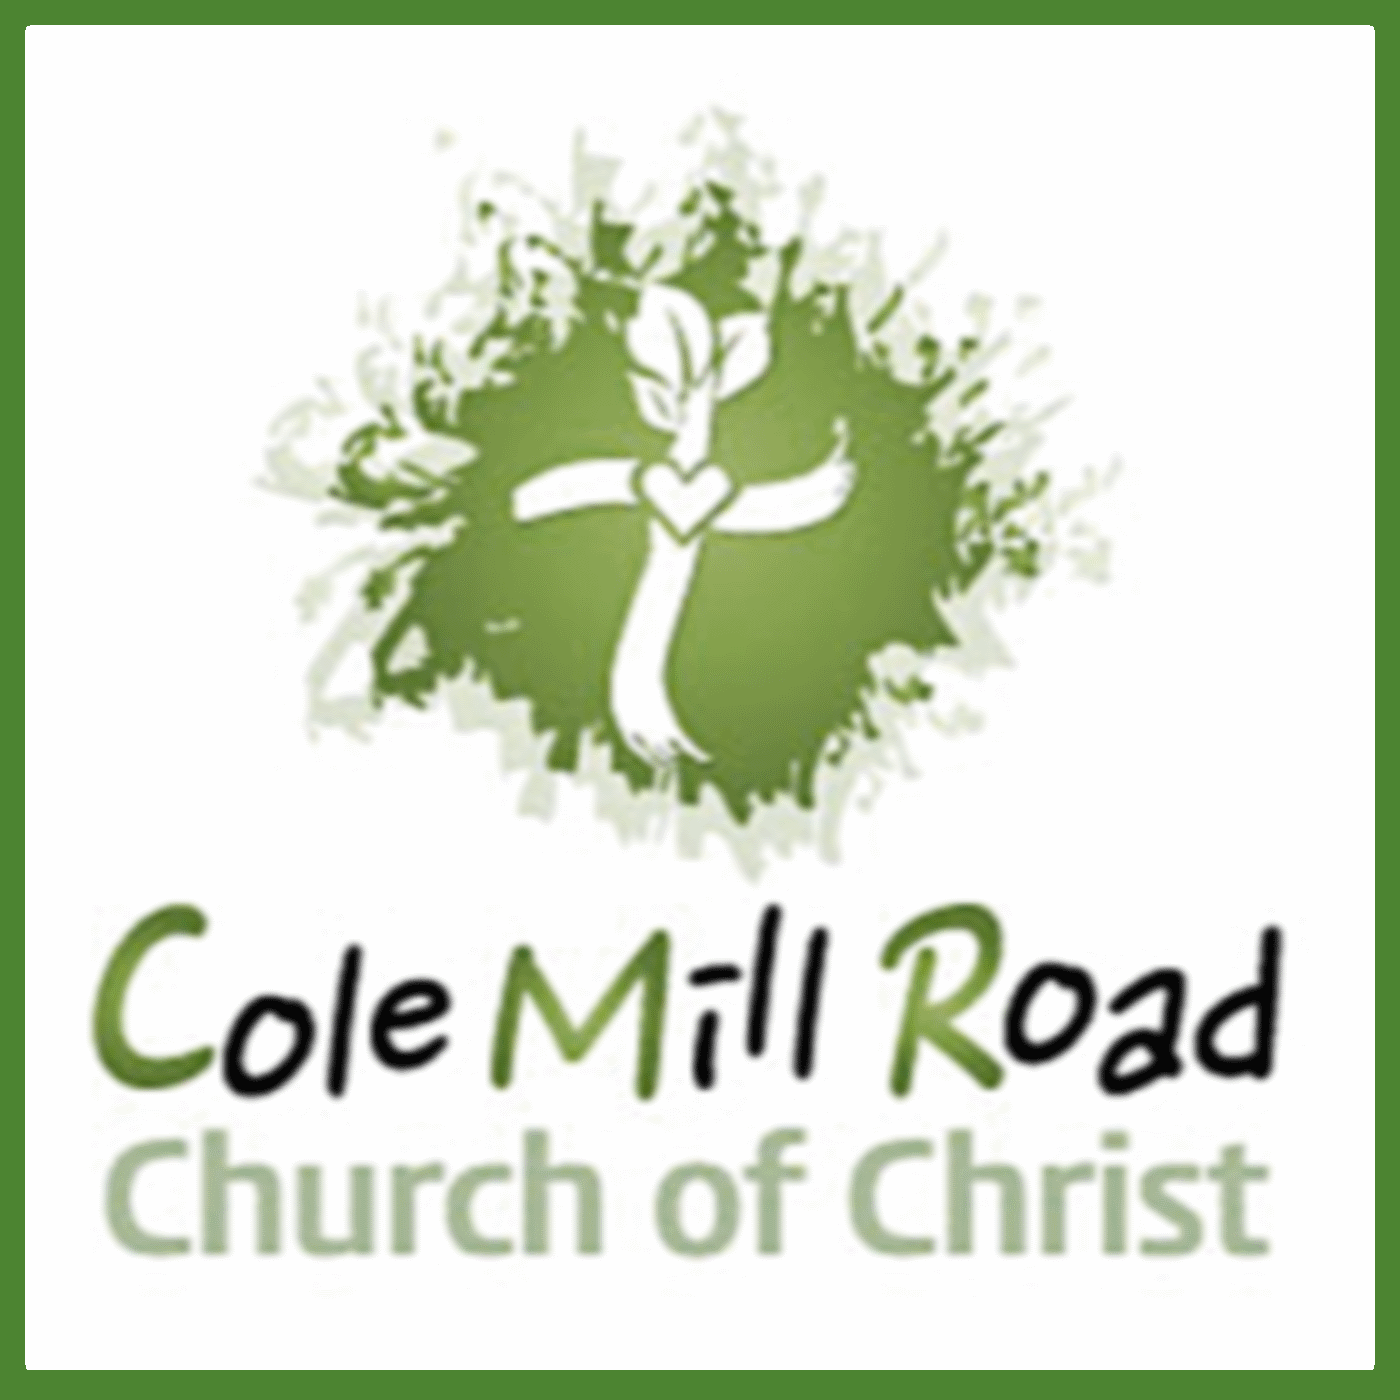 Sermons from Cole Mill Road Church of Christ